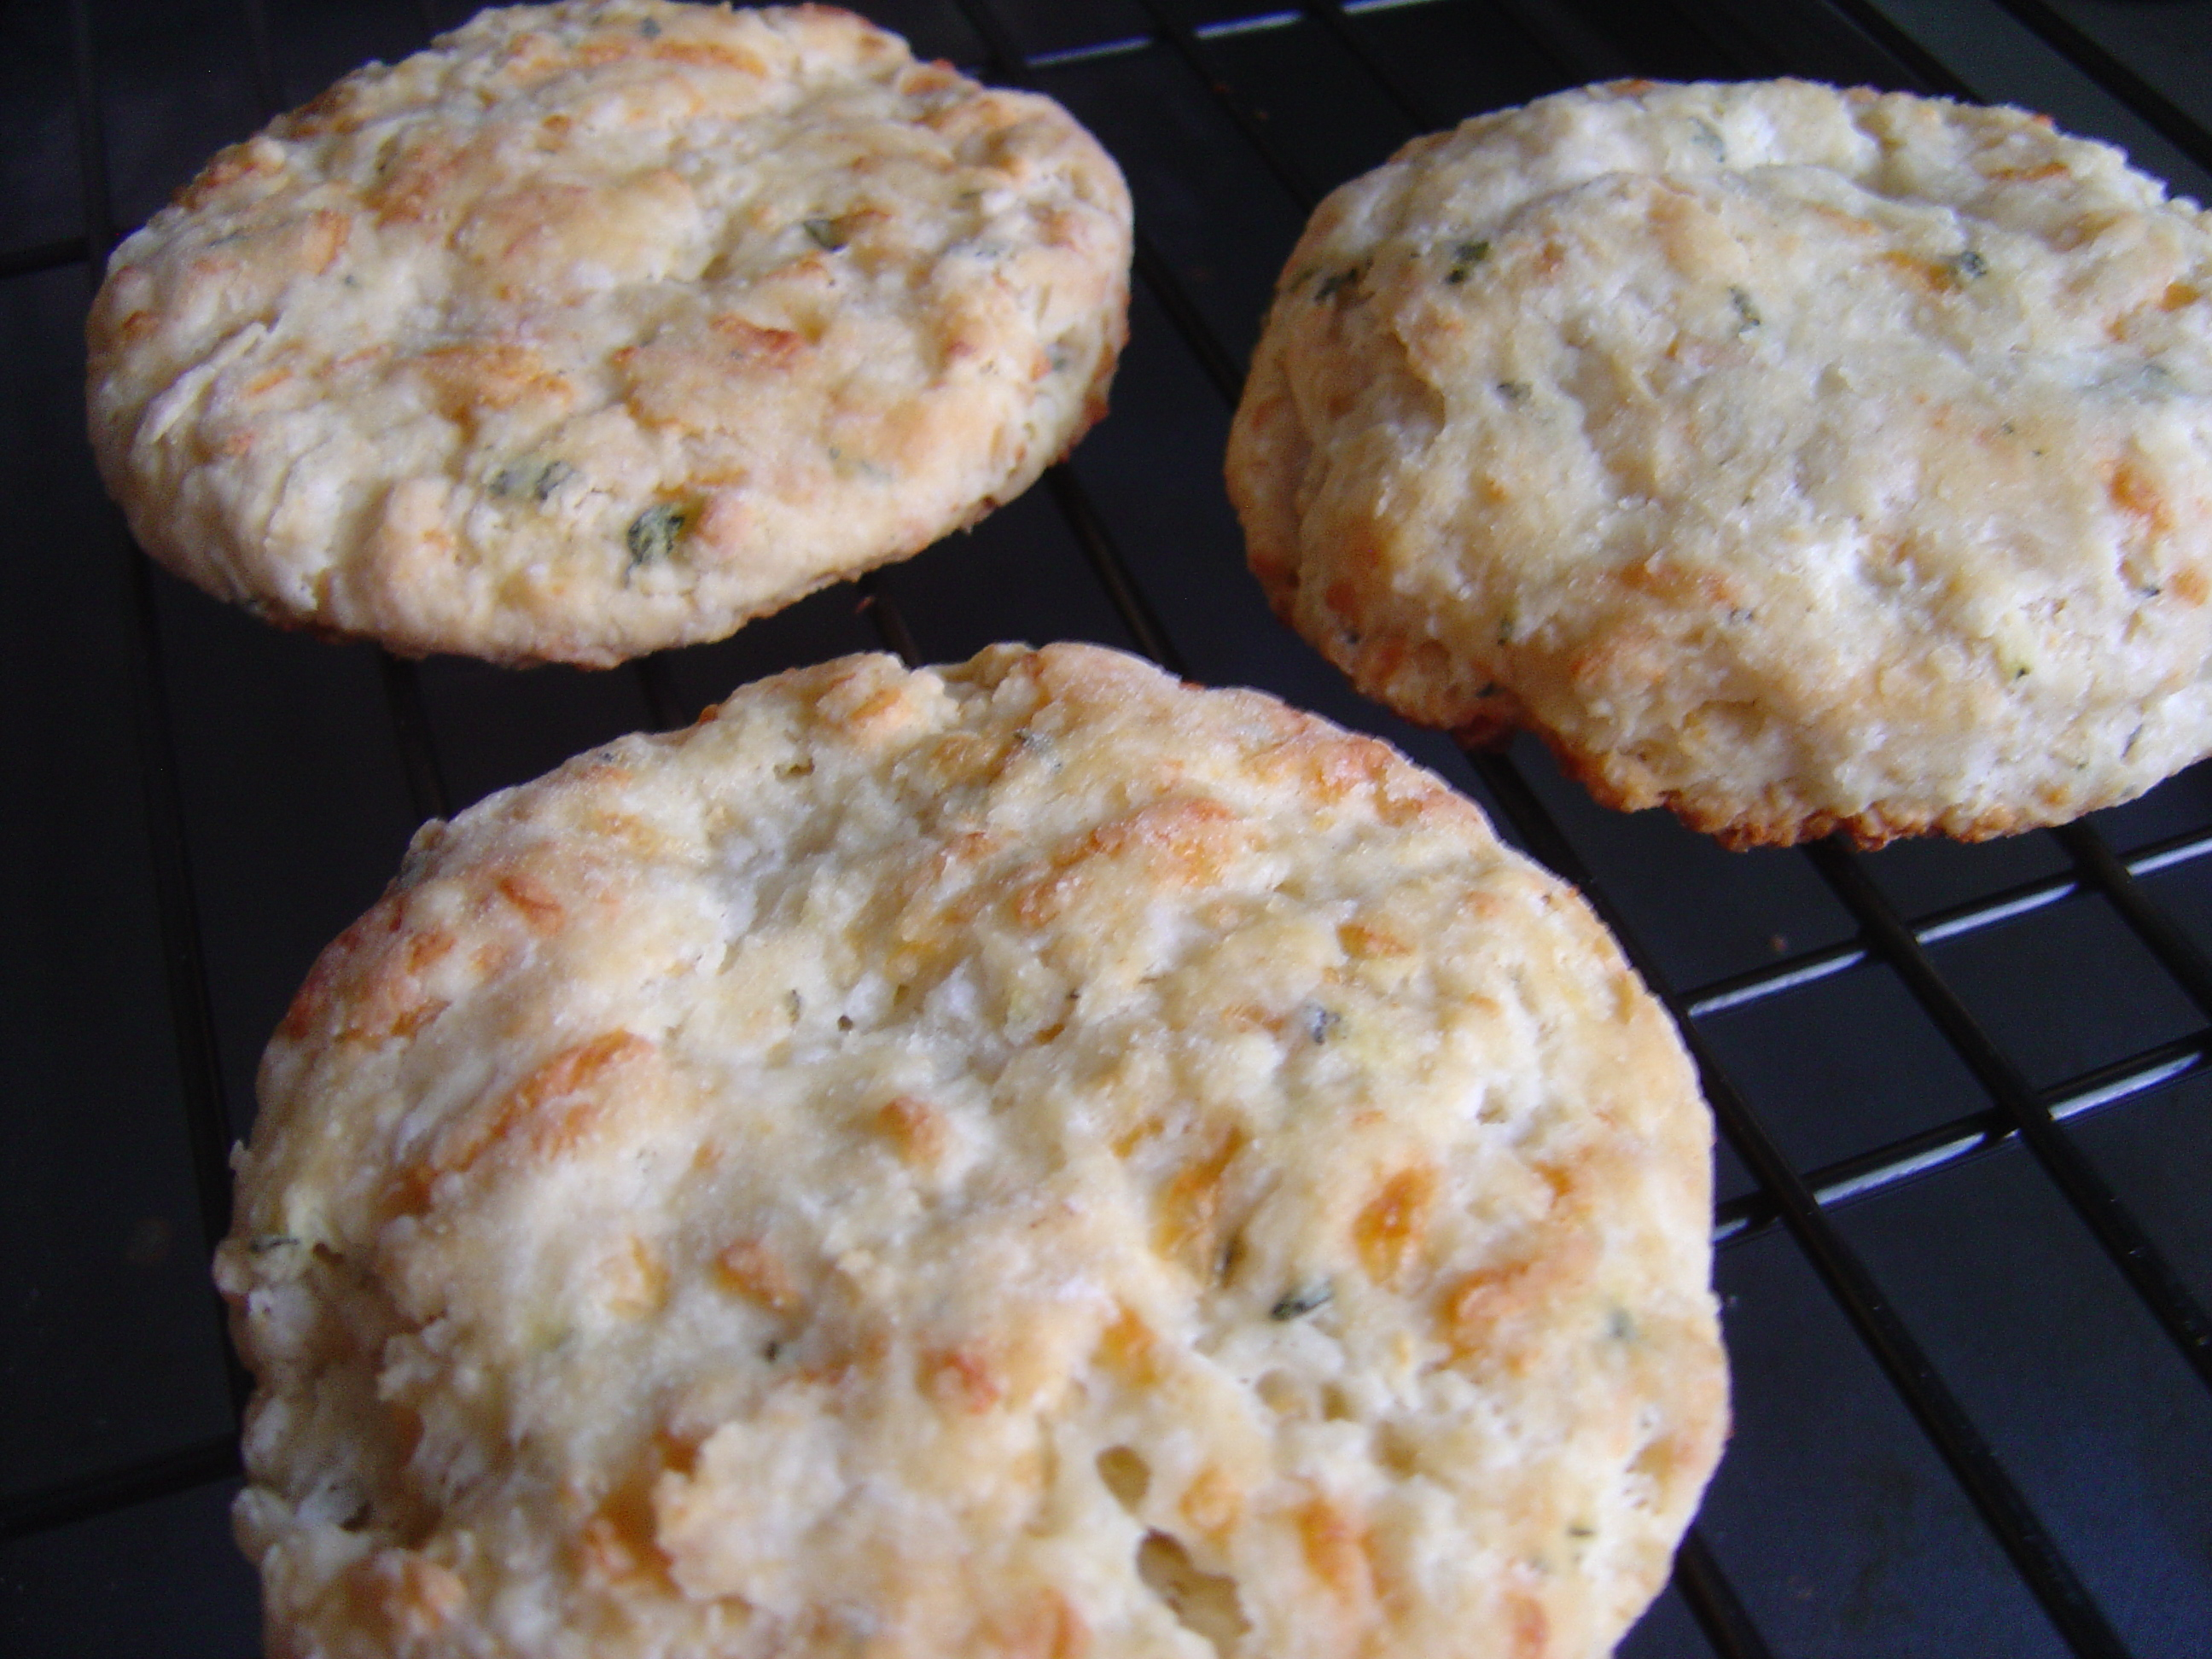 Thyme and Cheddar Biscuits